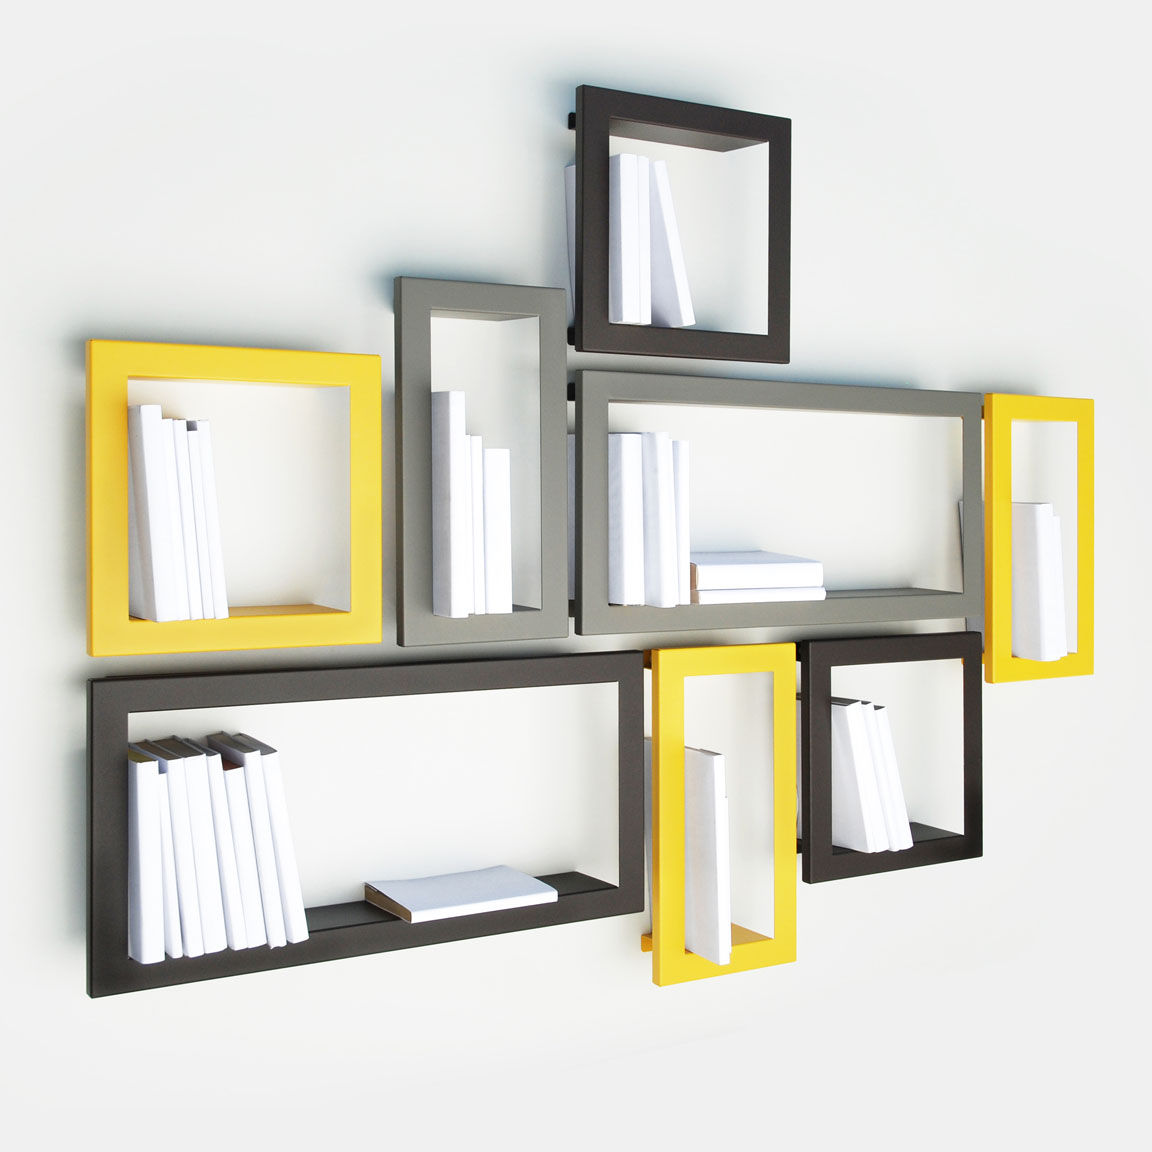 Contemporary Wall Shelf wall-mounted shelf / contemporary / metal / lacquered metal